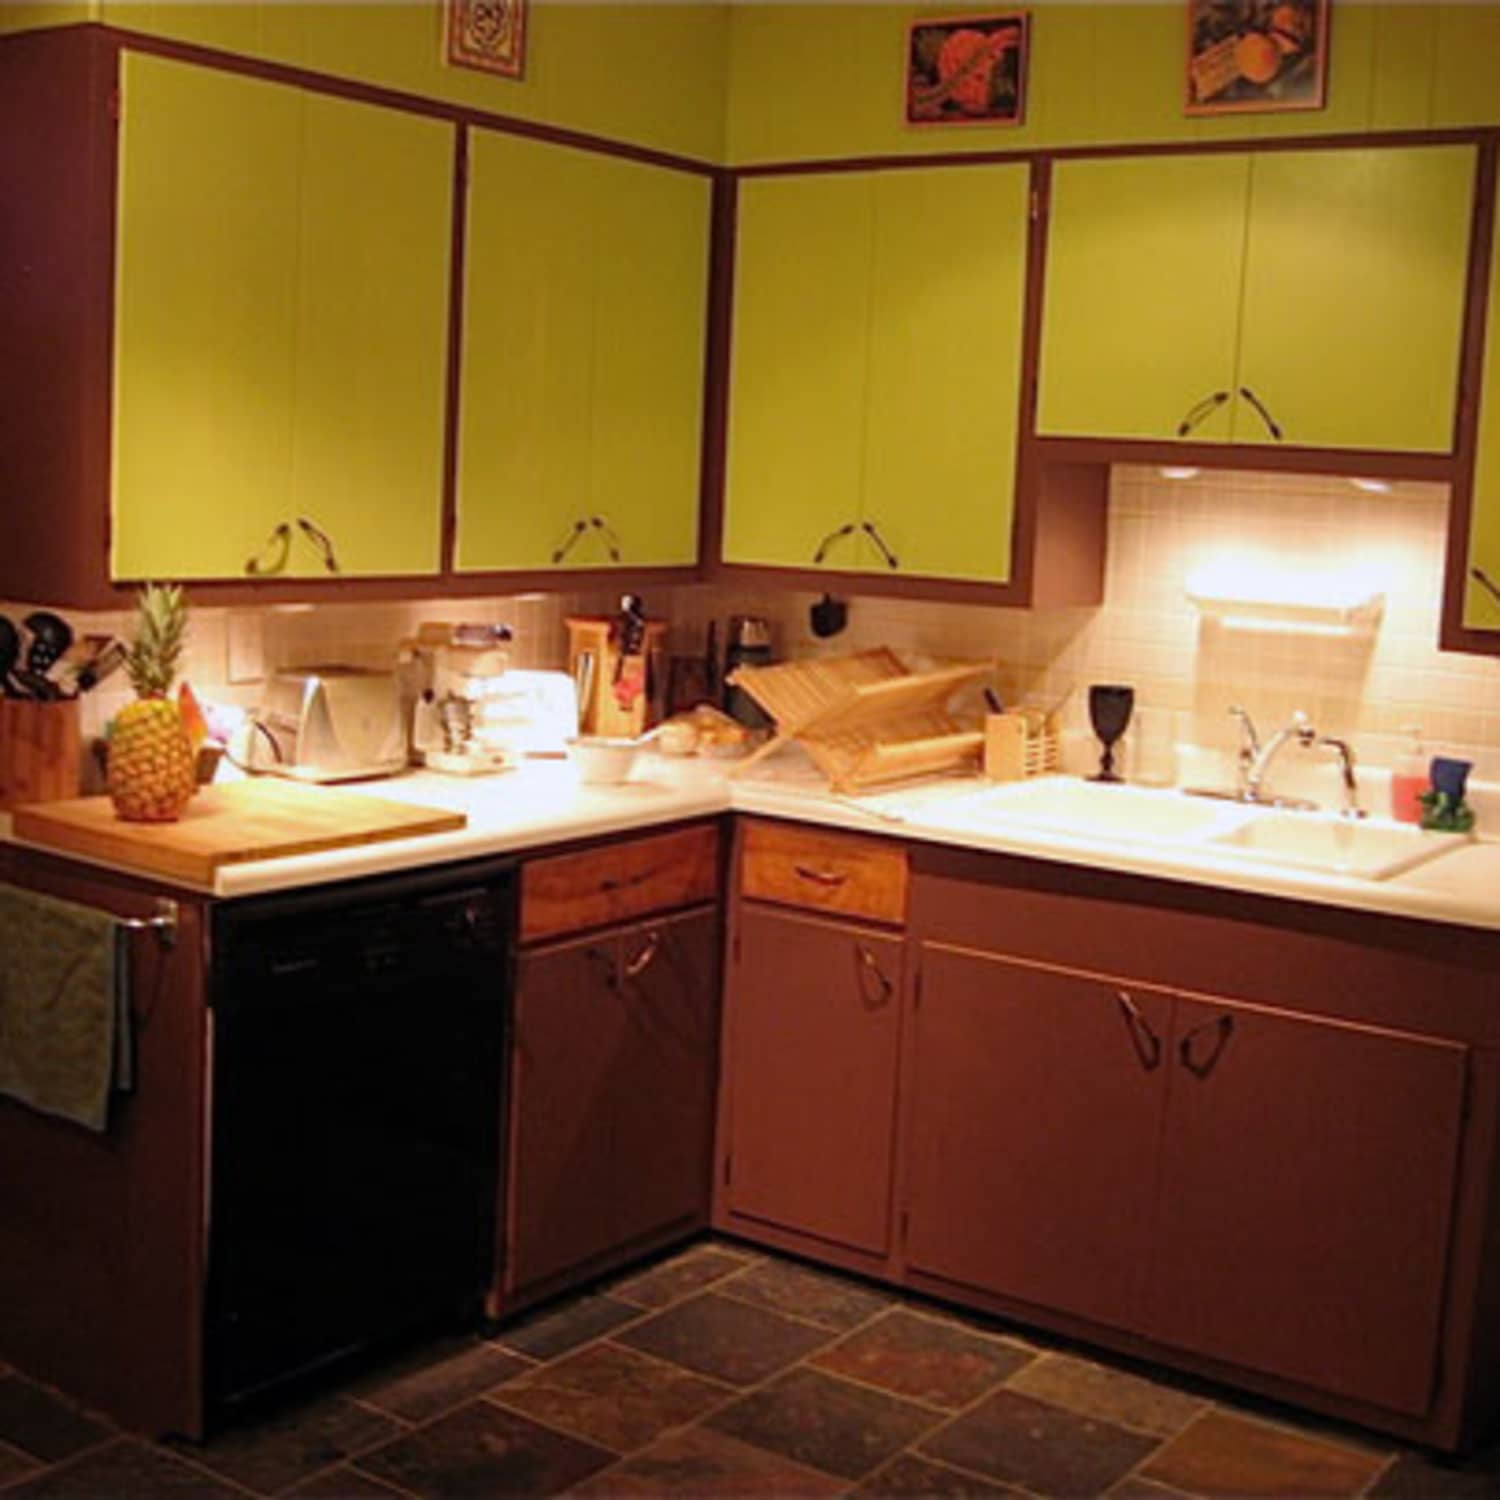 How To Refinish Flaky Cabinets From The 60s Jessi S February